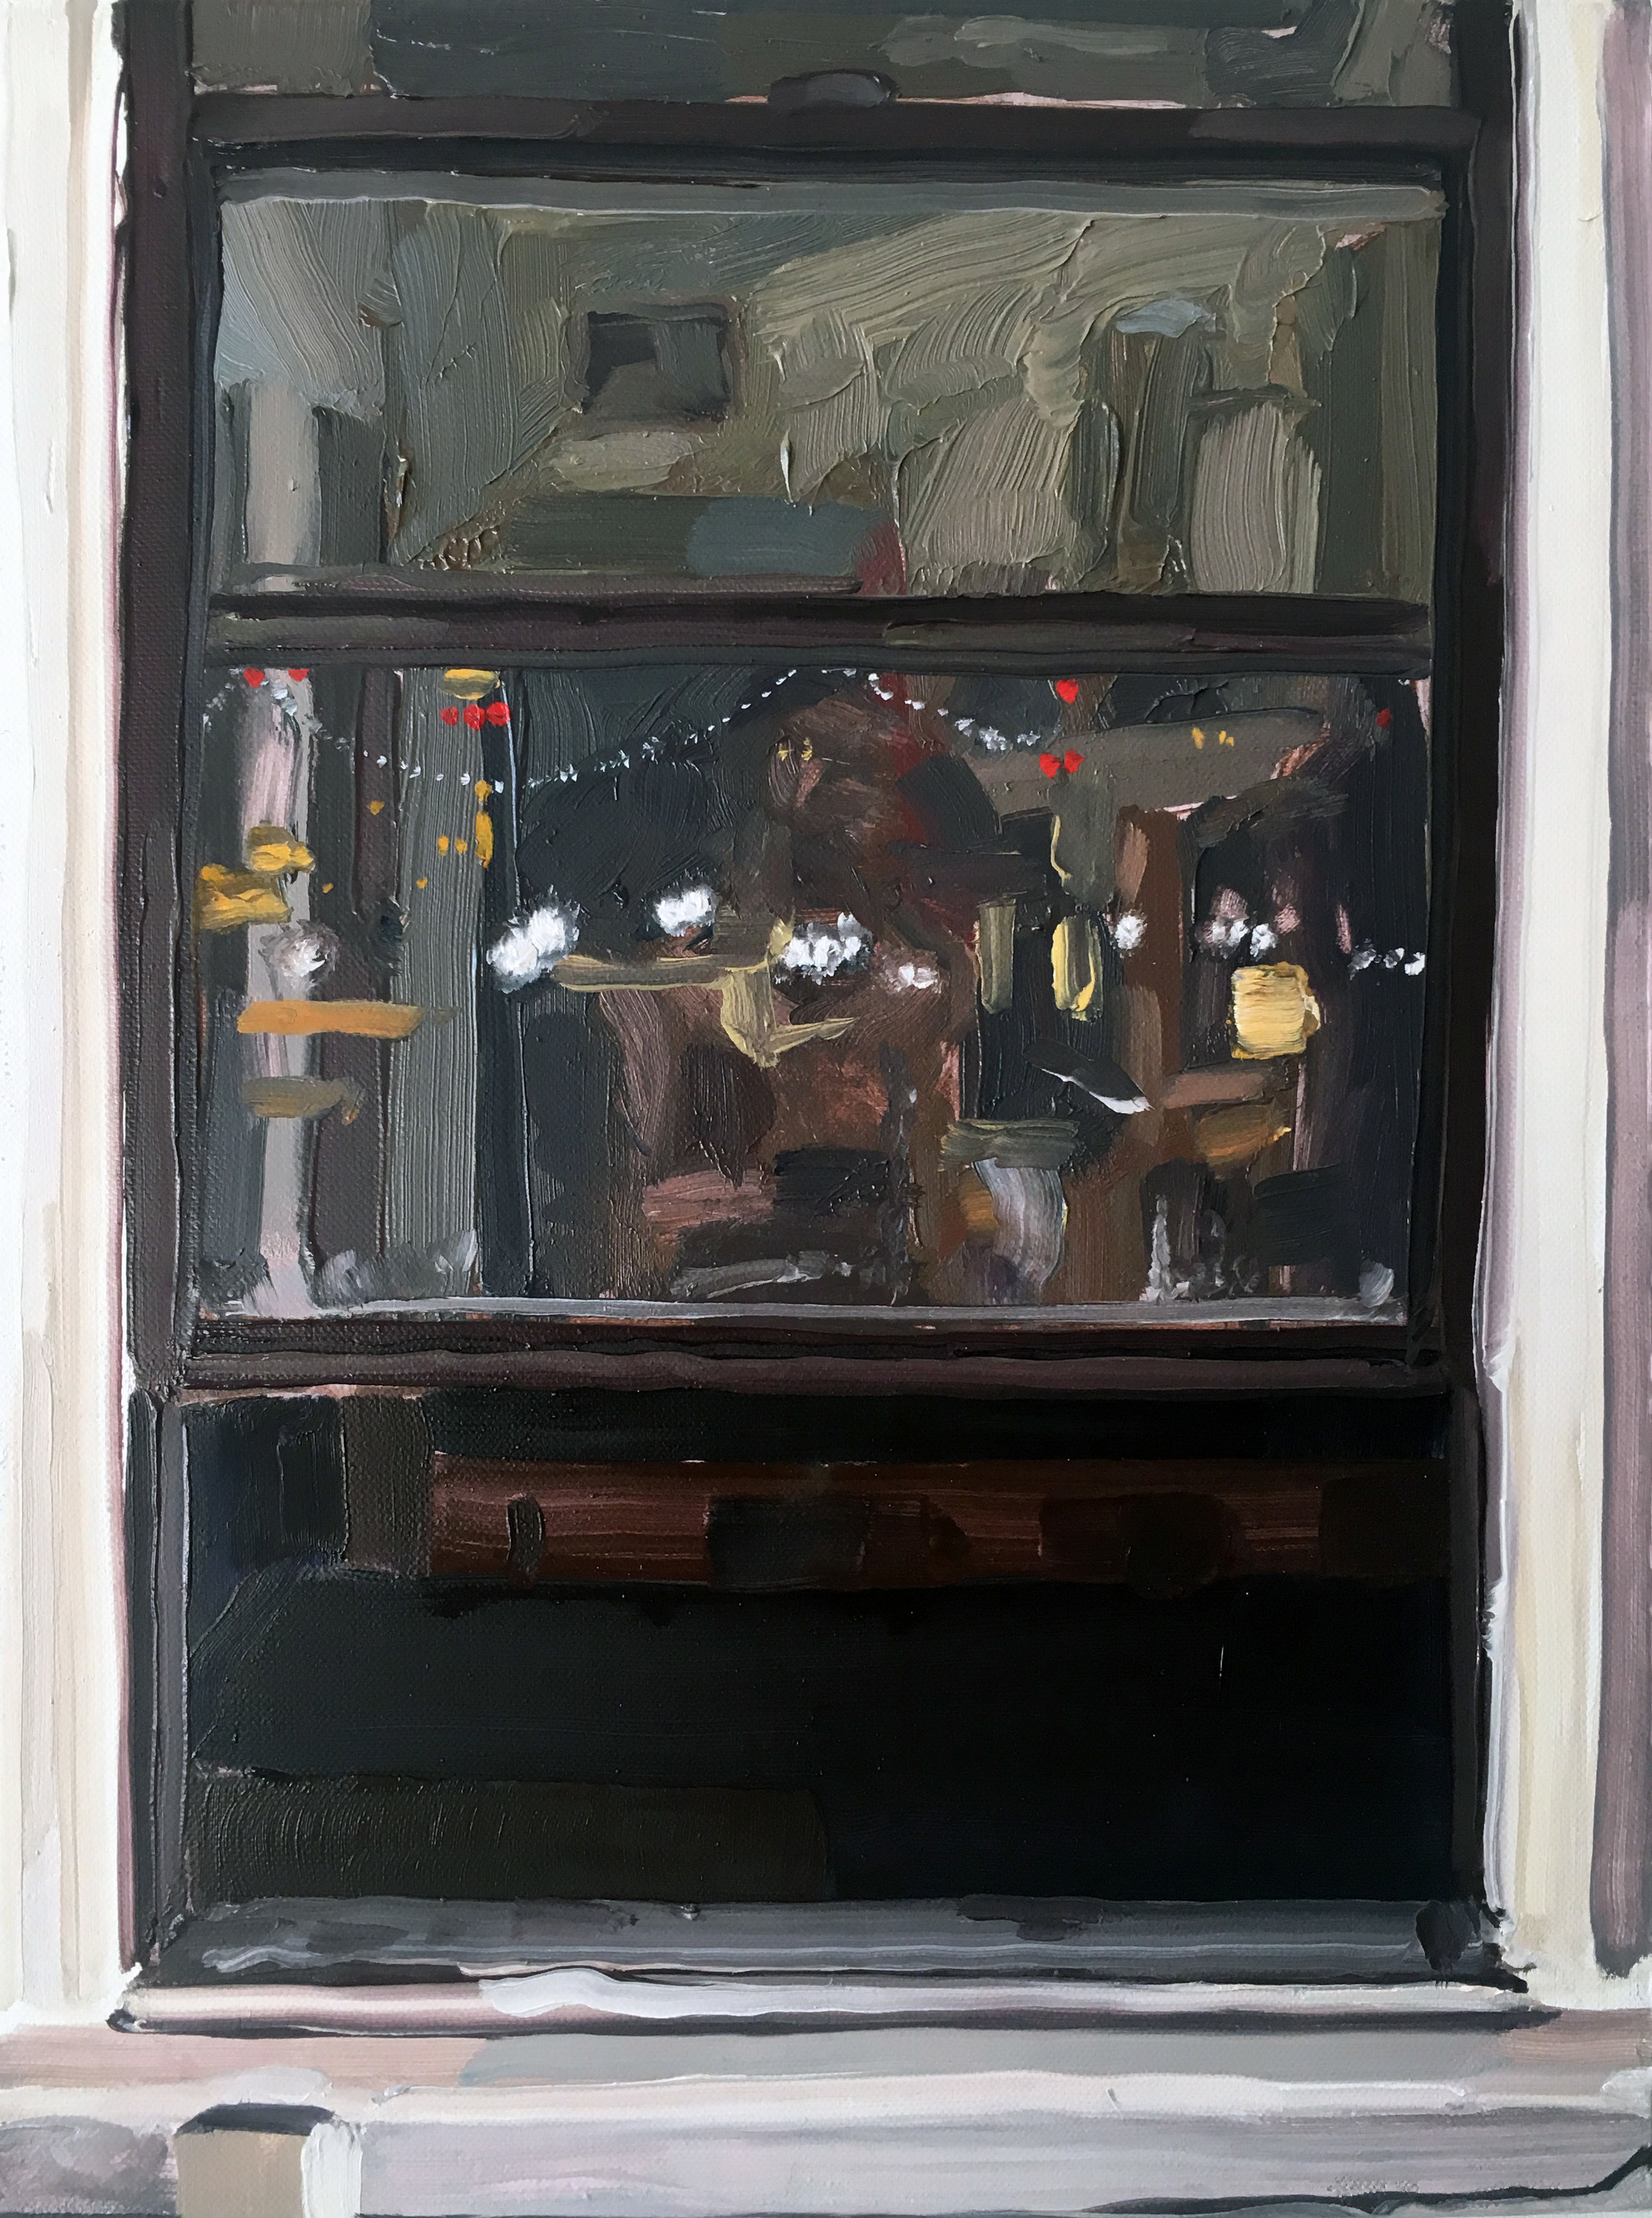 Night Window (6/30-7/1), 2017, oil on linen,12 x 9 inches